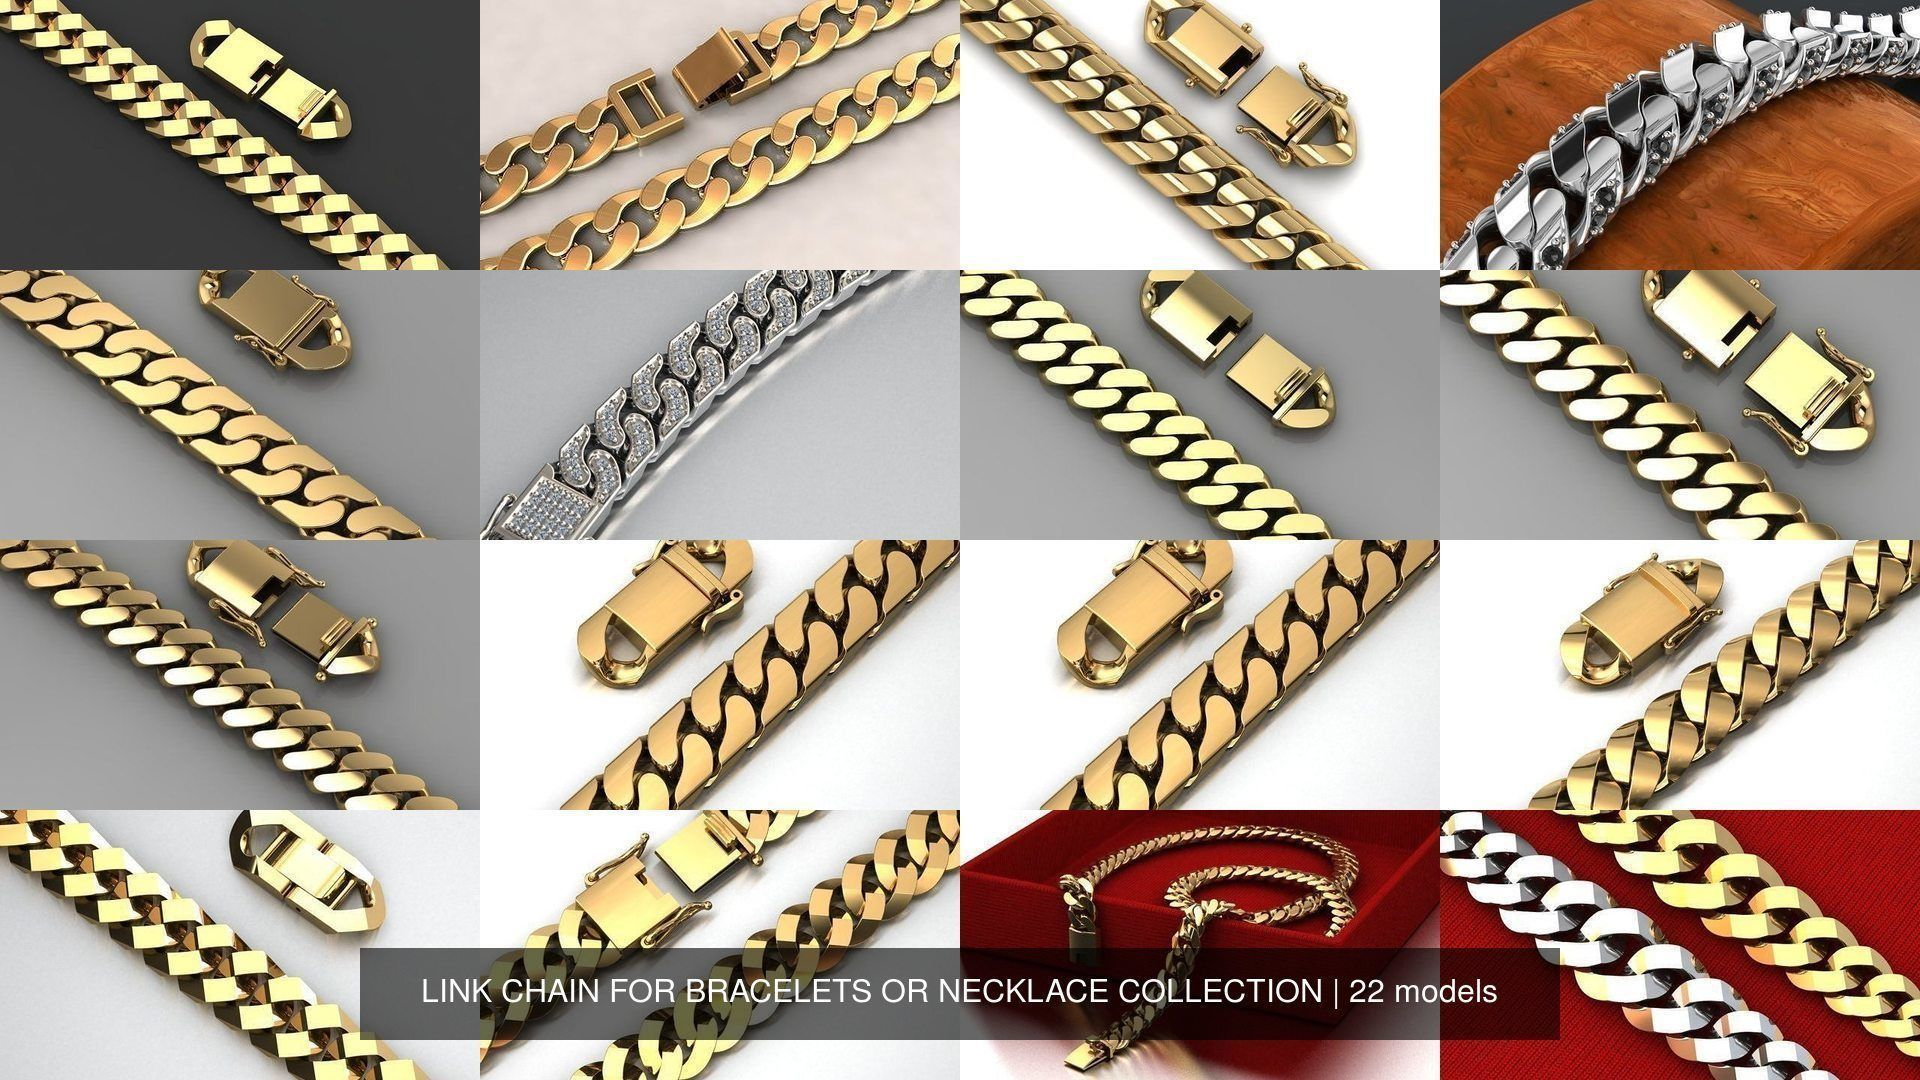 CUBAN LINK CHAIN FOR BRACELETS OR NECKLACE COLLECTION